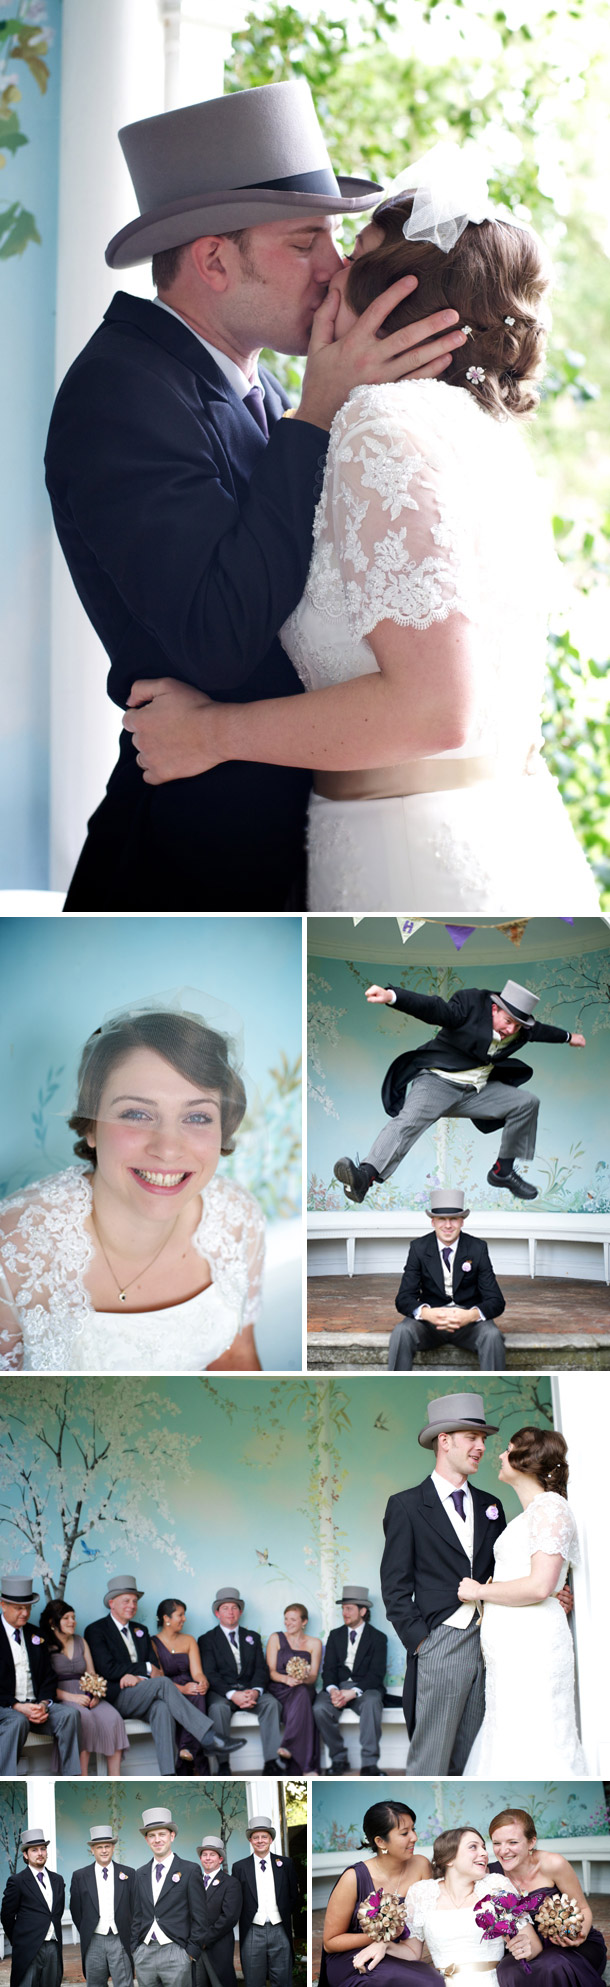 Ruth and Tristan's Hochzeit bei Michelle Joubert-Martin Photography